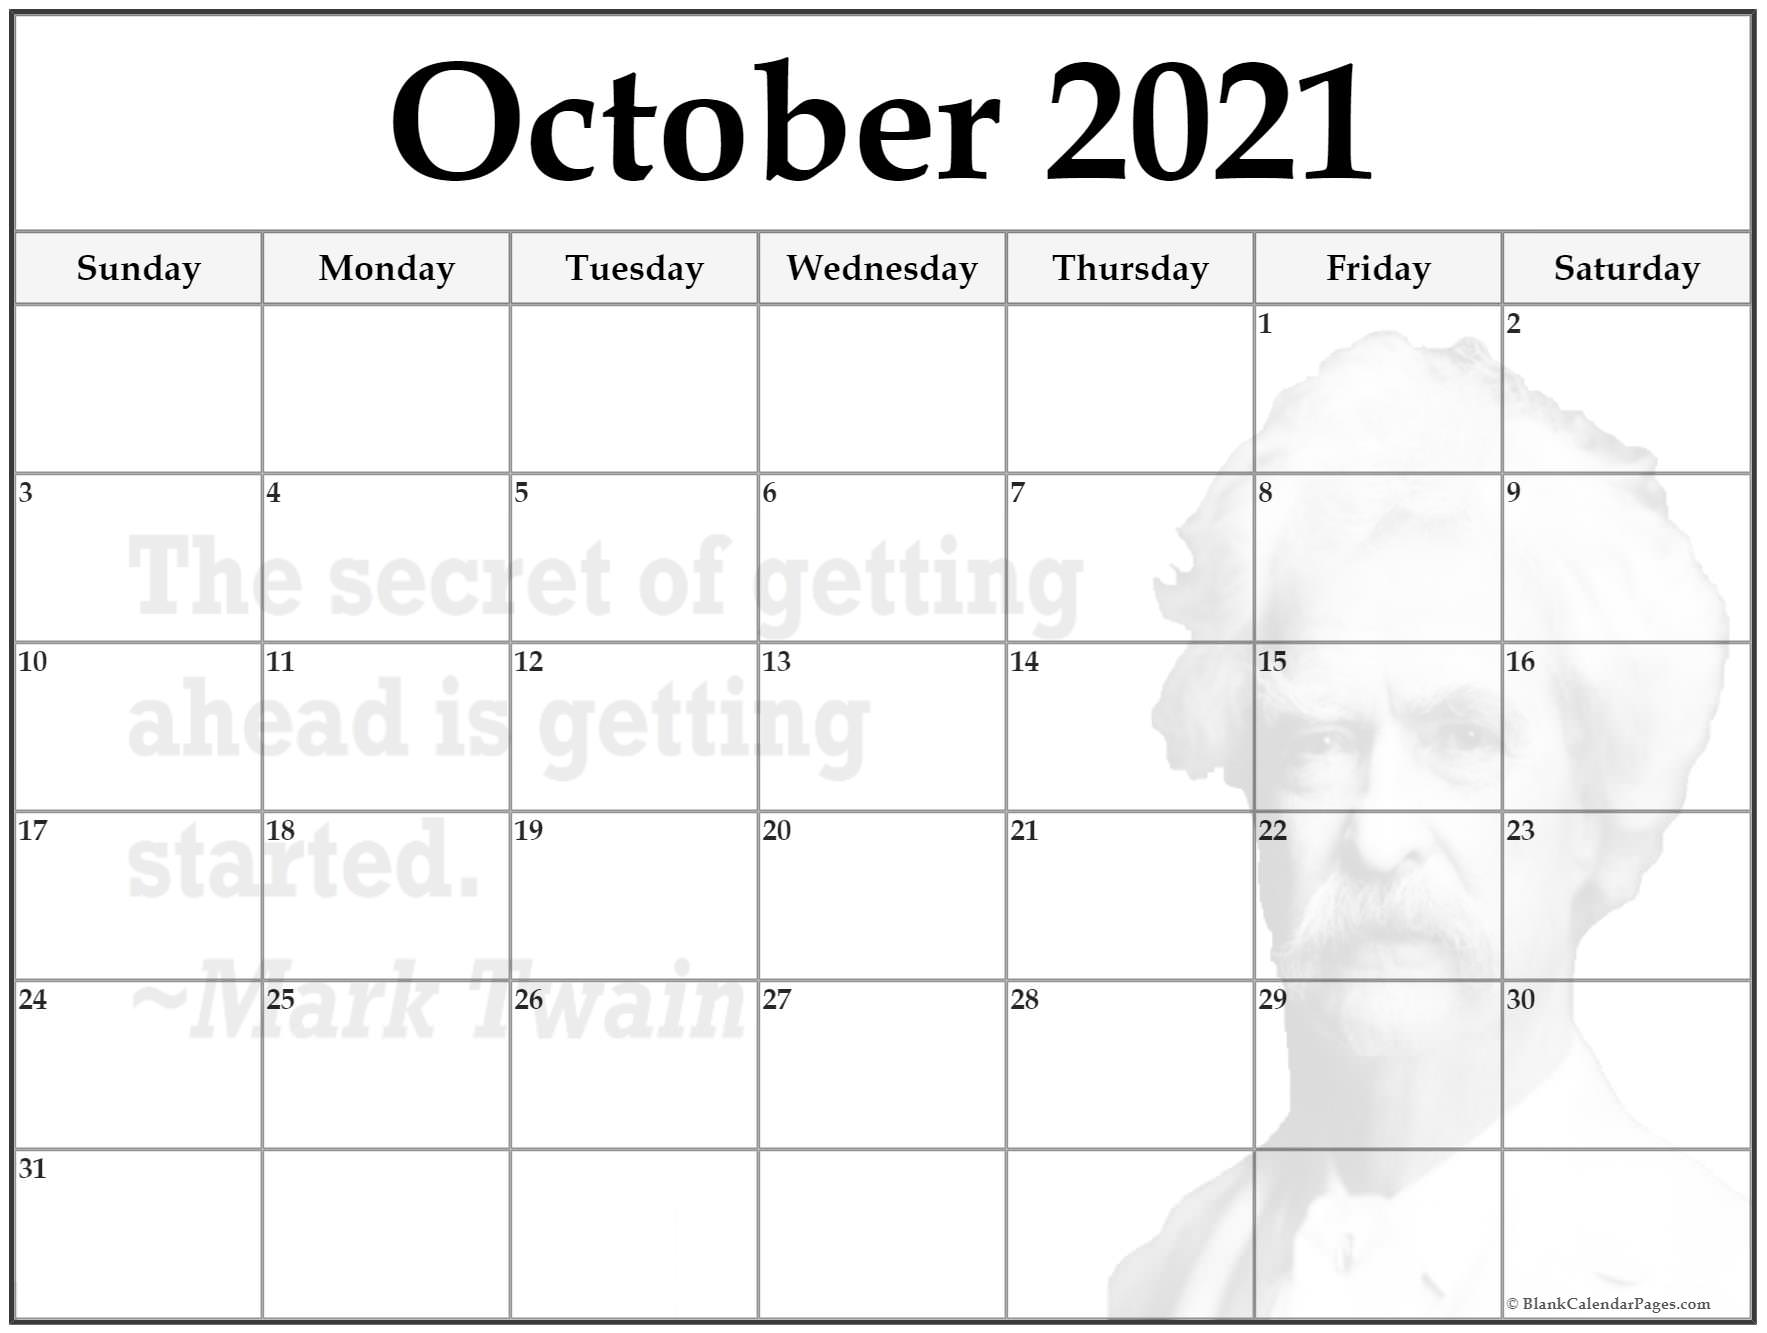 October 2020 with twain quotes. The secret of getting ahead is getting started. ~Mark Twain